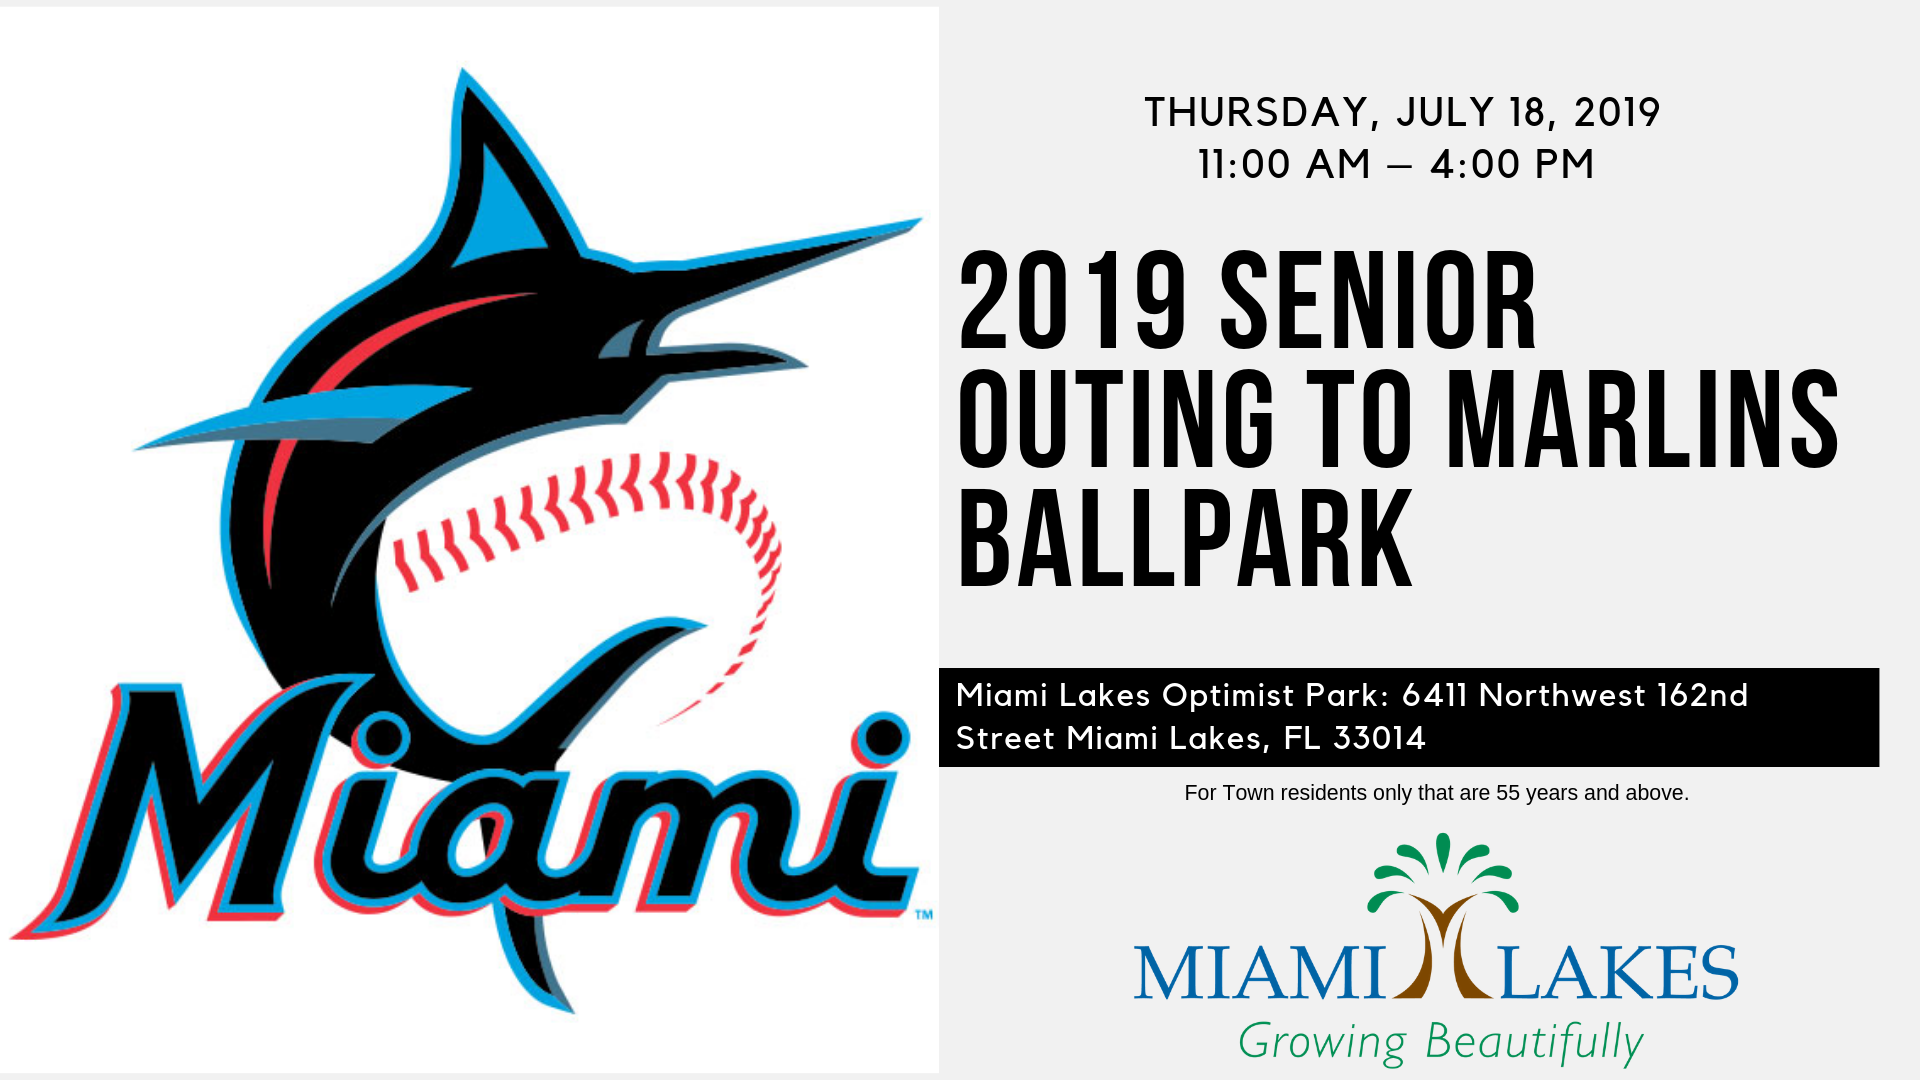 2019 Senior Outing to Marlins Ballpark JULY 18